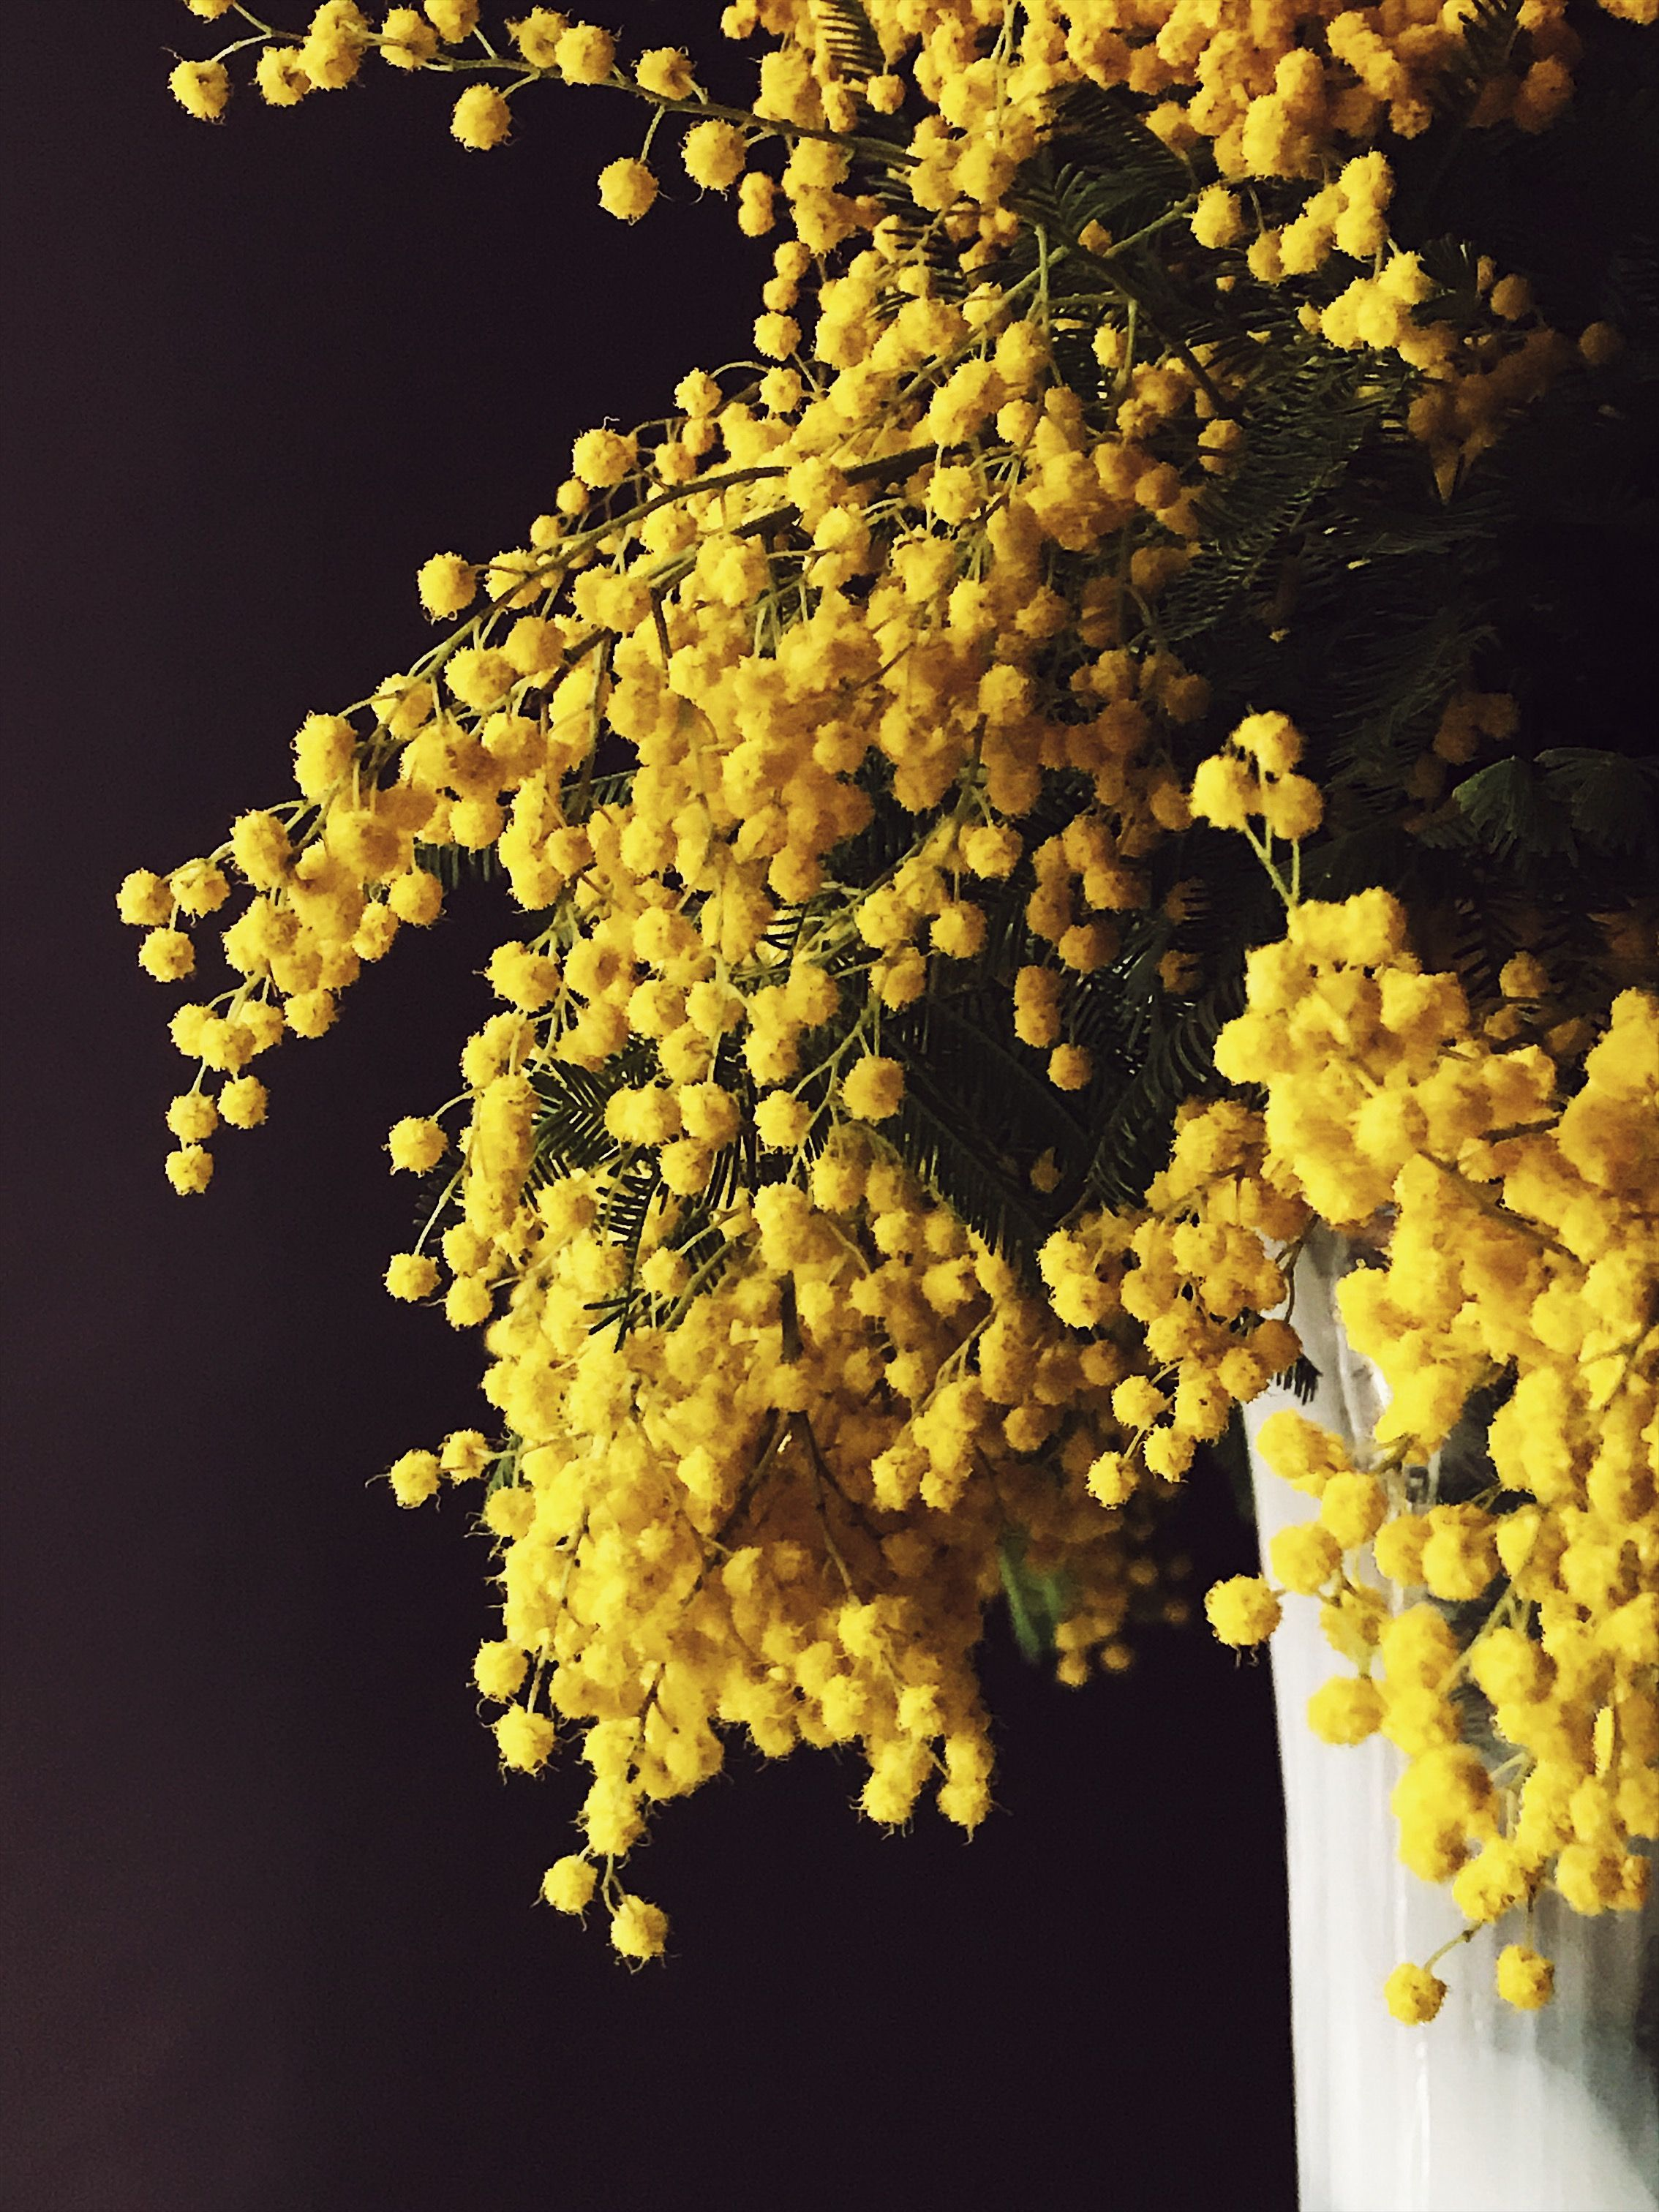 Mimosa Flowers Oh That Smell Mimosa Flower Yellow Flowers All Flowers